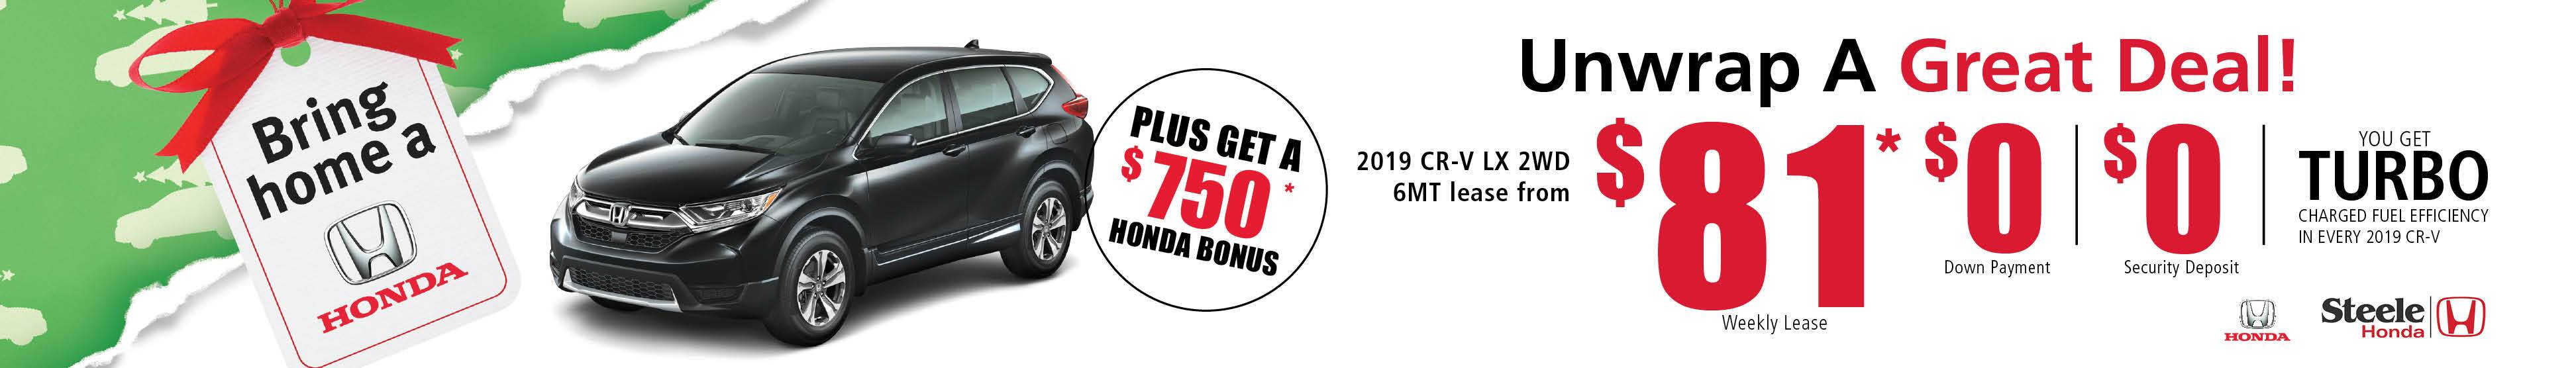 Bring Home A Honda 2019 - CR-V